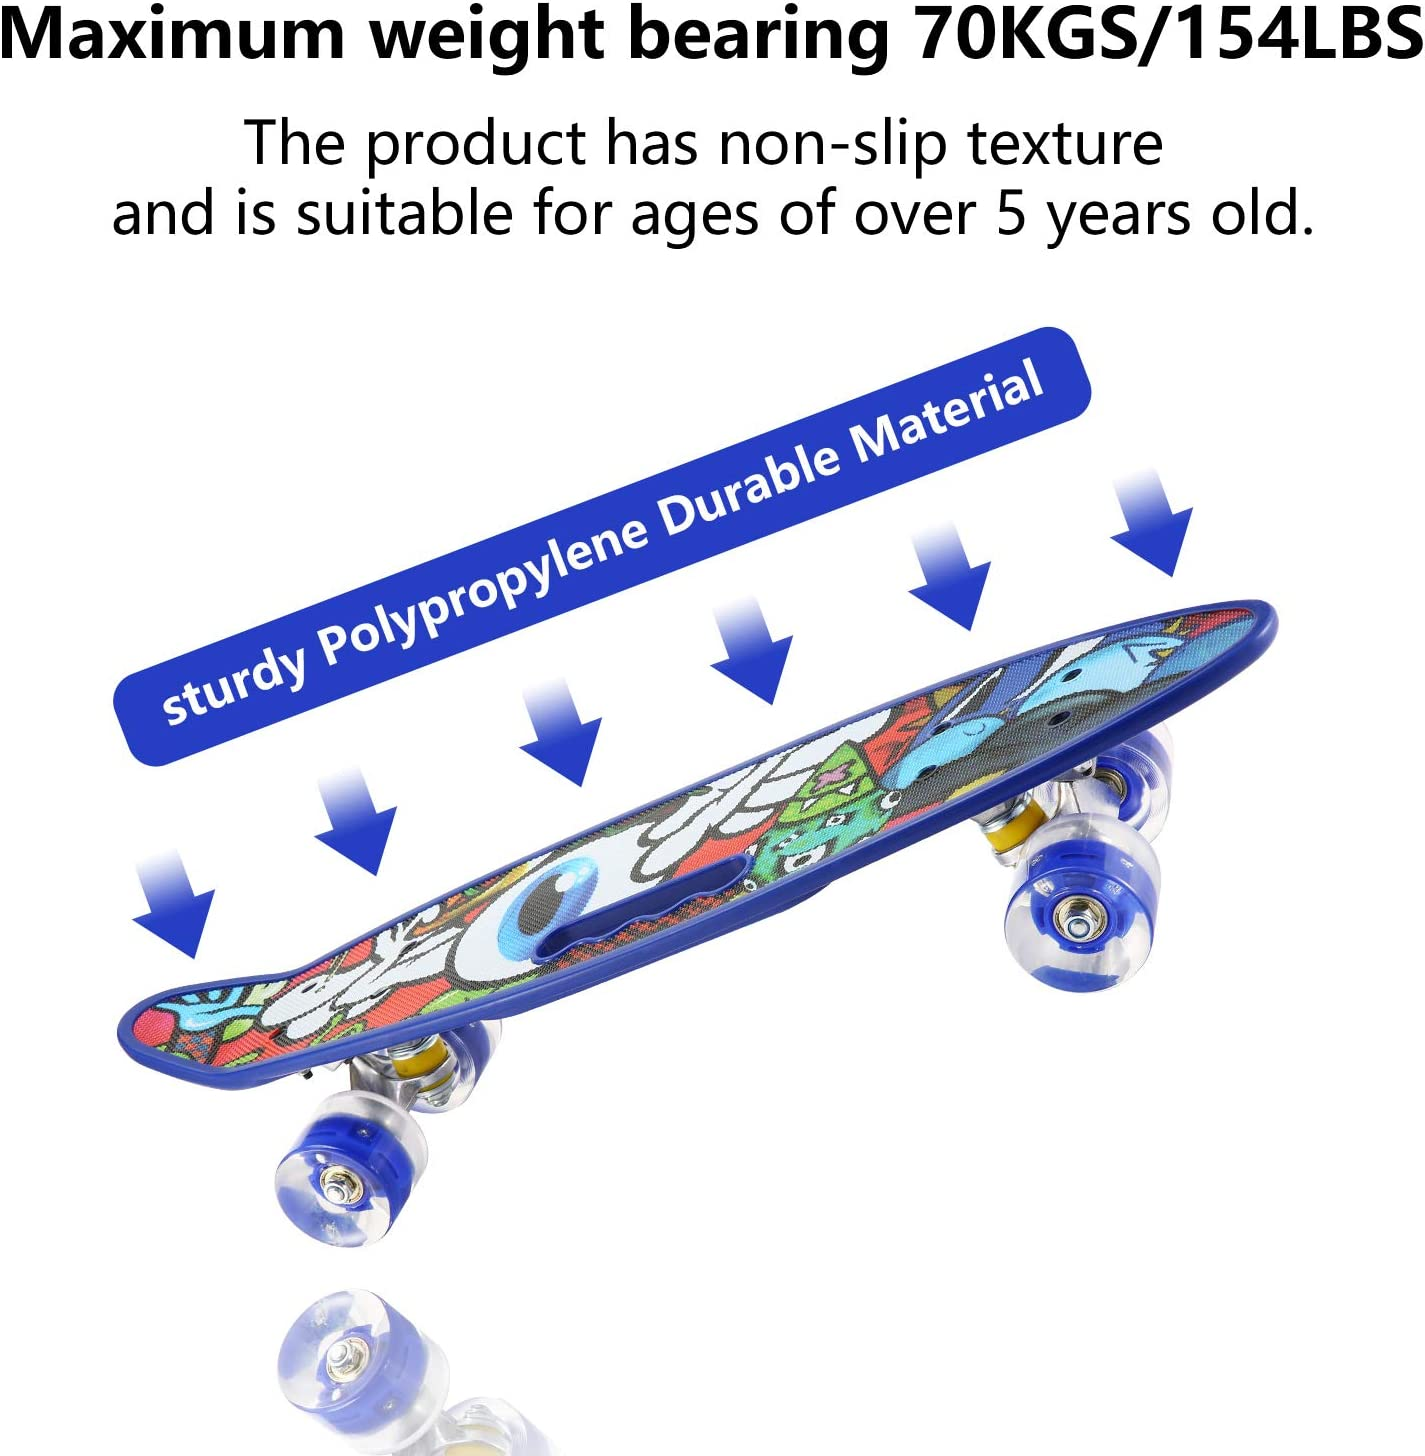 Sansirp Skateboard Merkapa 31 Complete Skateboards Standard With Colorful Led Wheels 7 Layers Maple Wood Deck For Kids Boys Girls Adults Beginners Skateboards Standard Skateboards